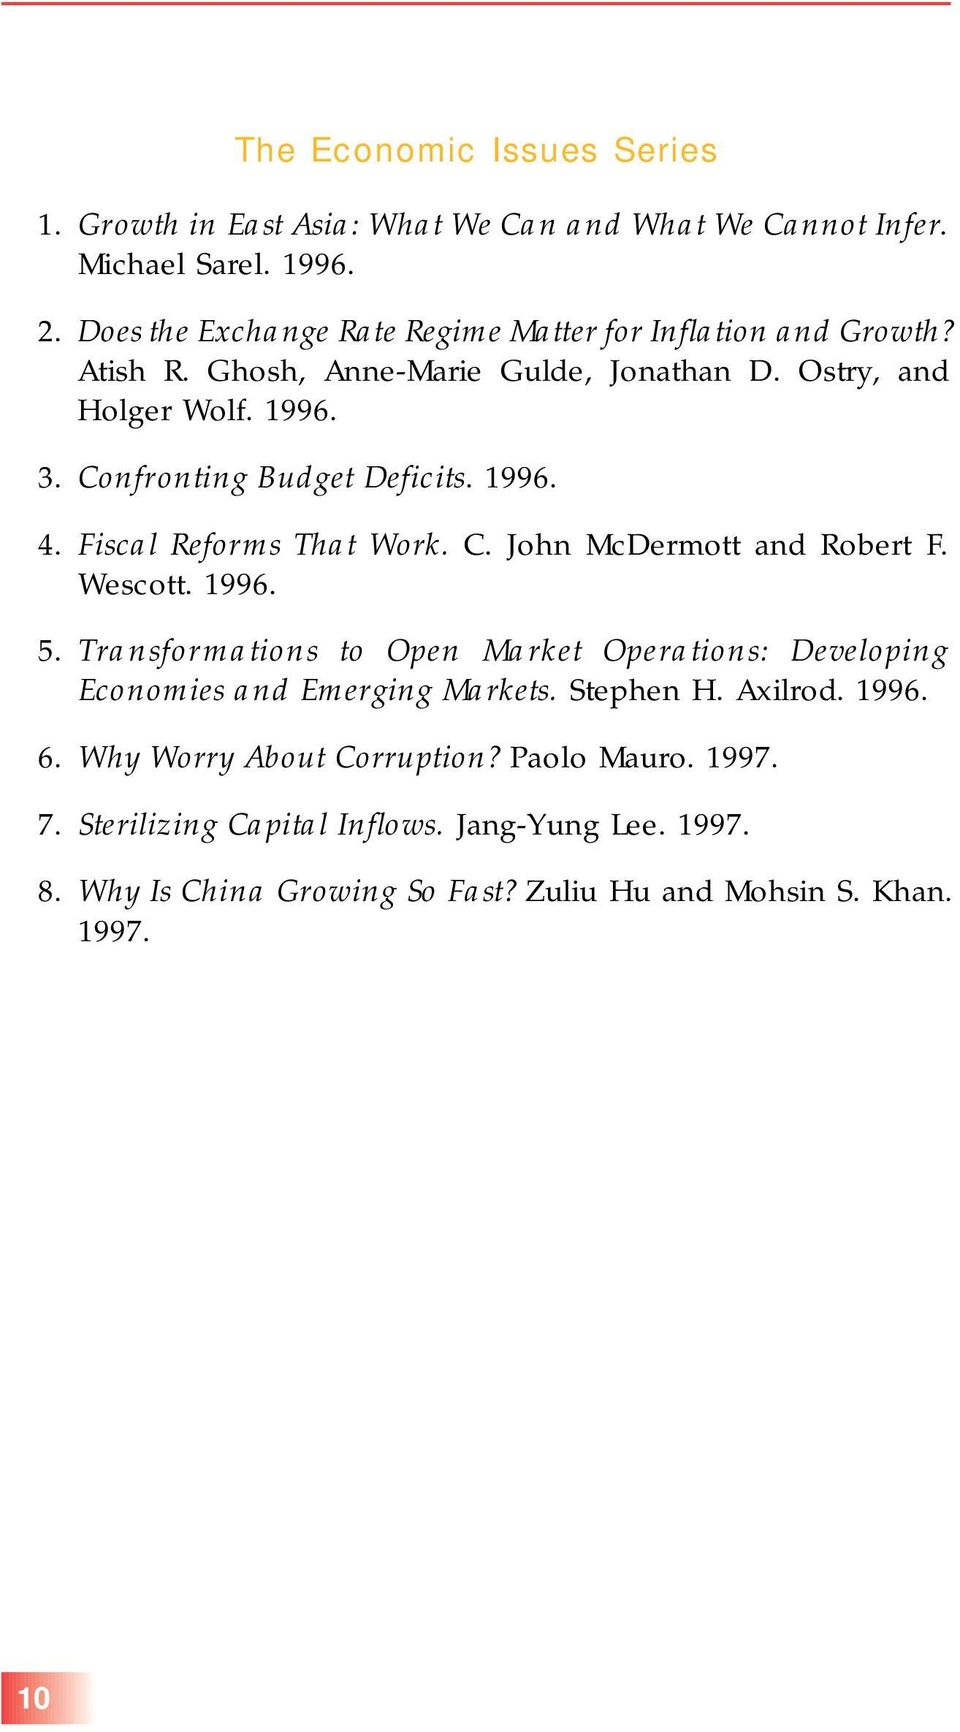 Confronting Budget Deficits. 1996. 4. Fiscal Reforms That Work. C. John McDermott and Robert F. Wescott. 1996. 5.